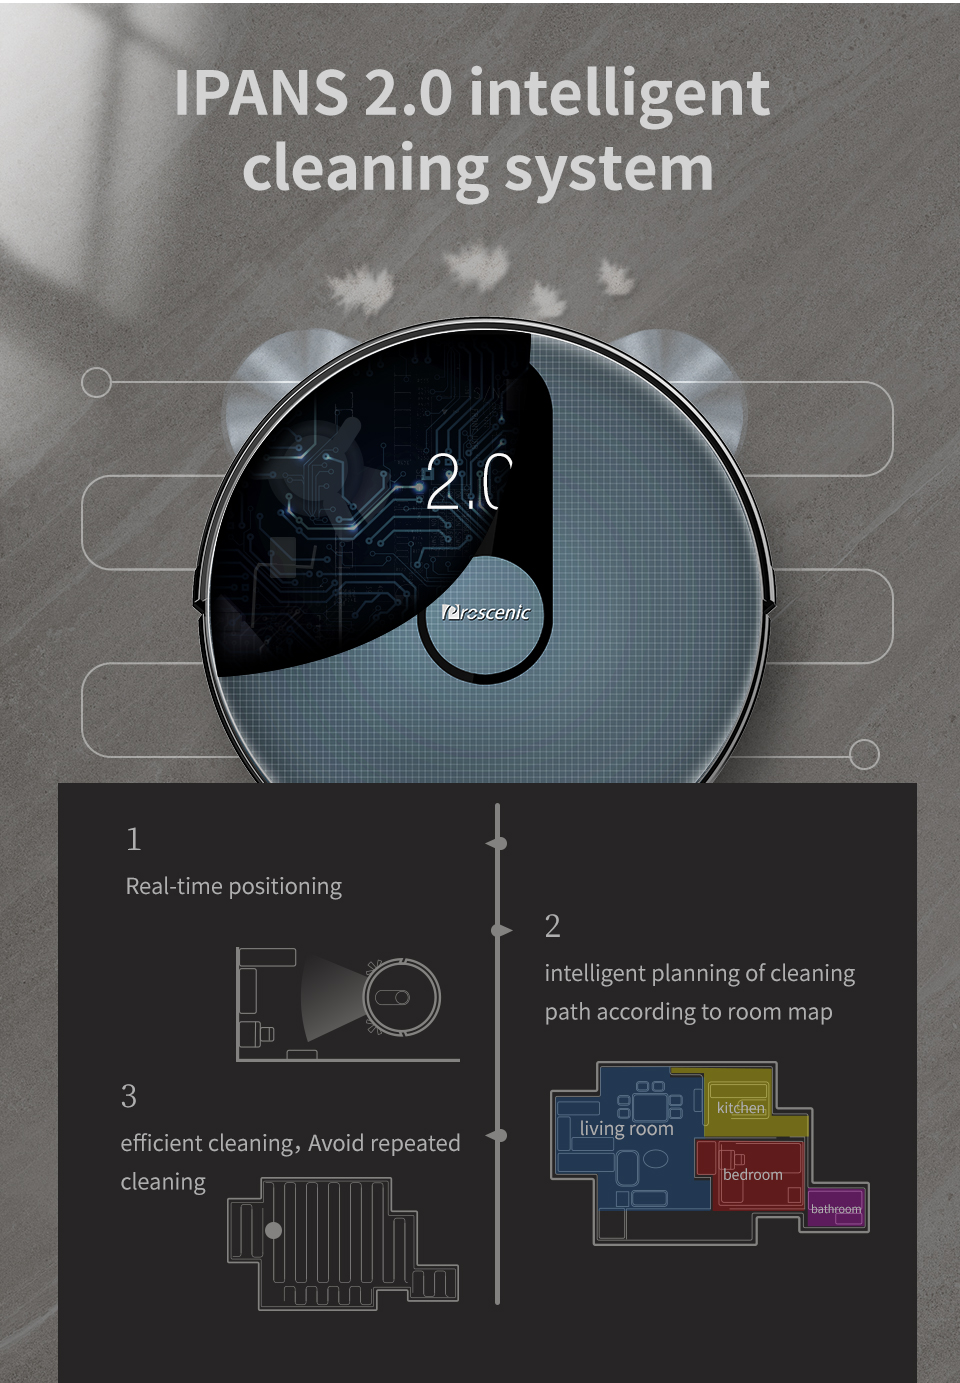 H702d2e64f9ca475c956ce2a04a03f8cb2 Proscenic 820P Robot Vacuum Cleaner Smart Planned 1800Pa Suction with wet cleaning for Home Carpet Cleaner Washing Smart Robot